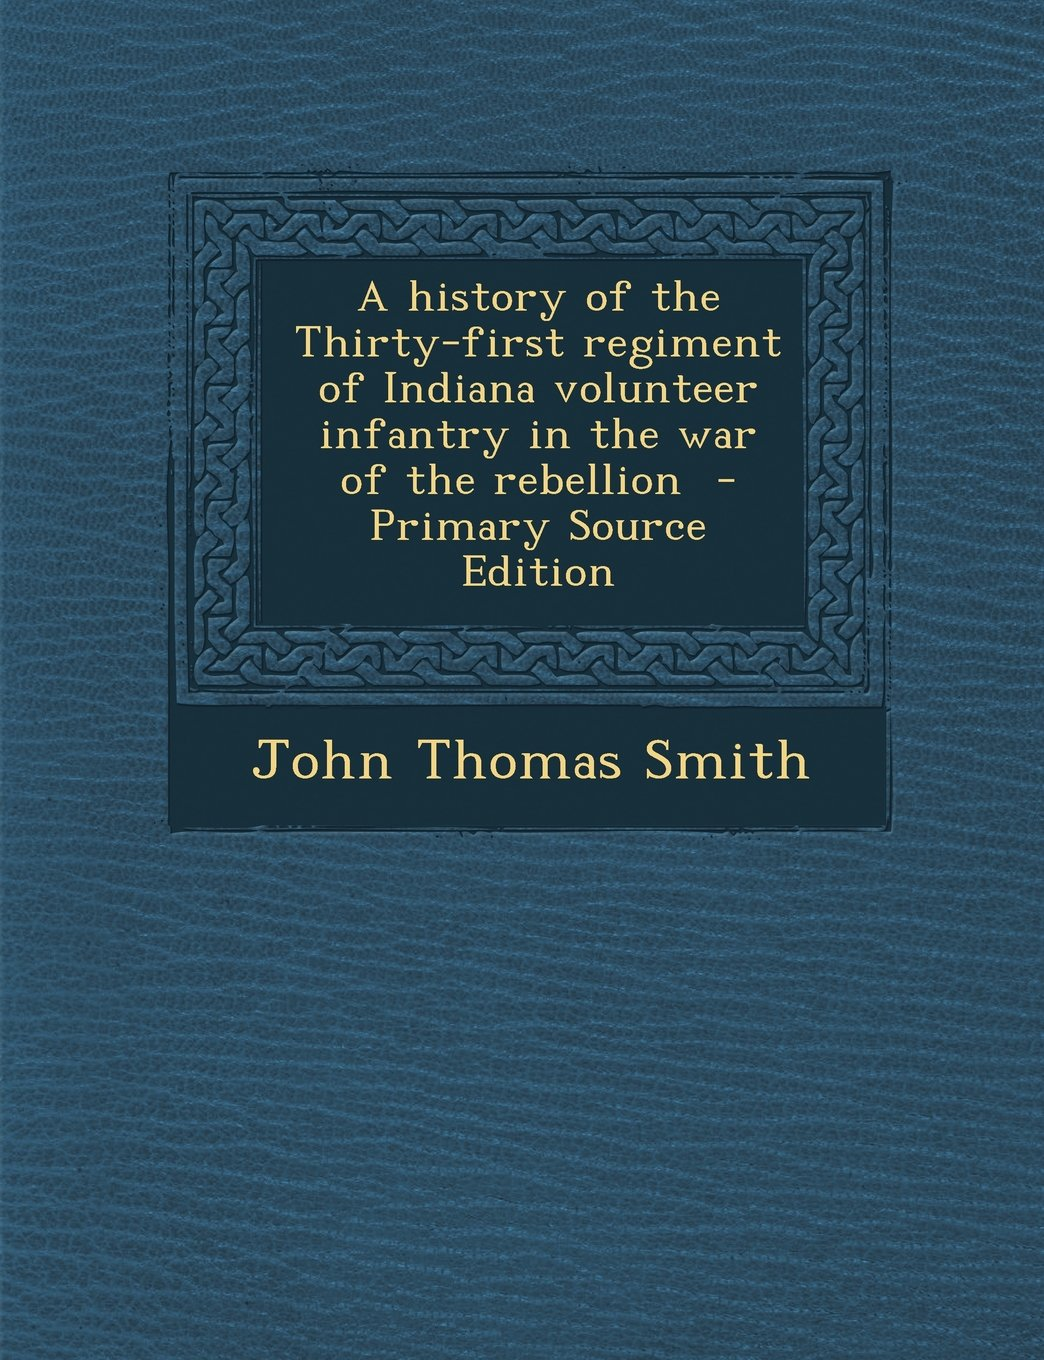 Download History of the Thirty-First Regiment of Indiana Volunteer Infantry in the War of the Rebellion PDF